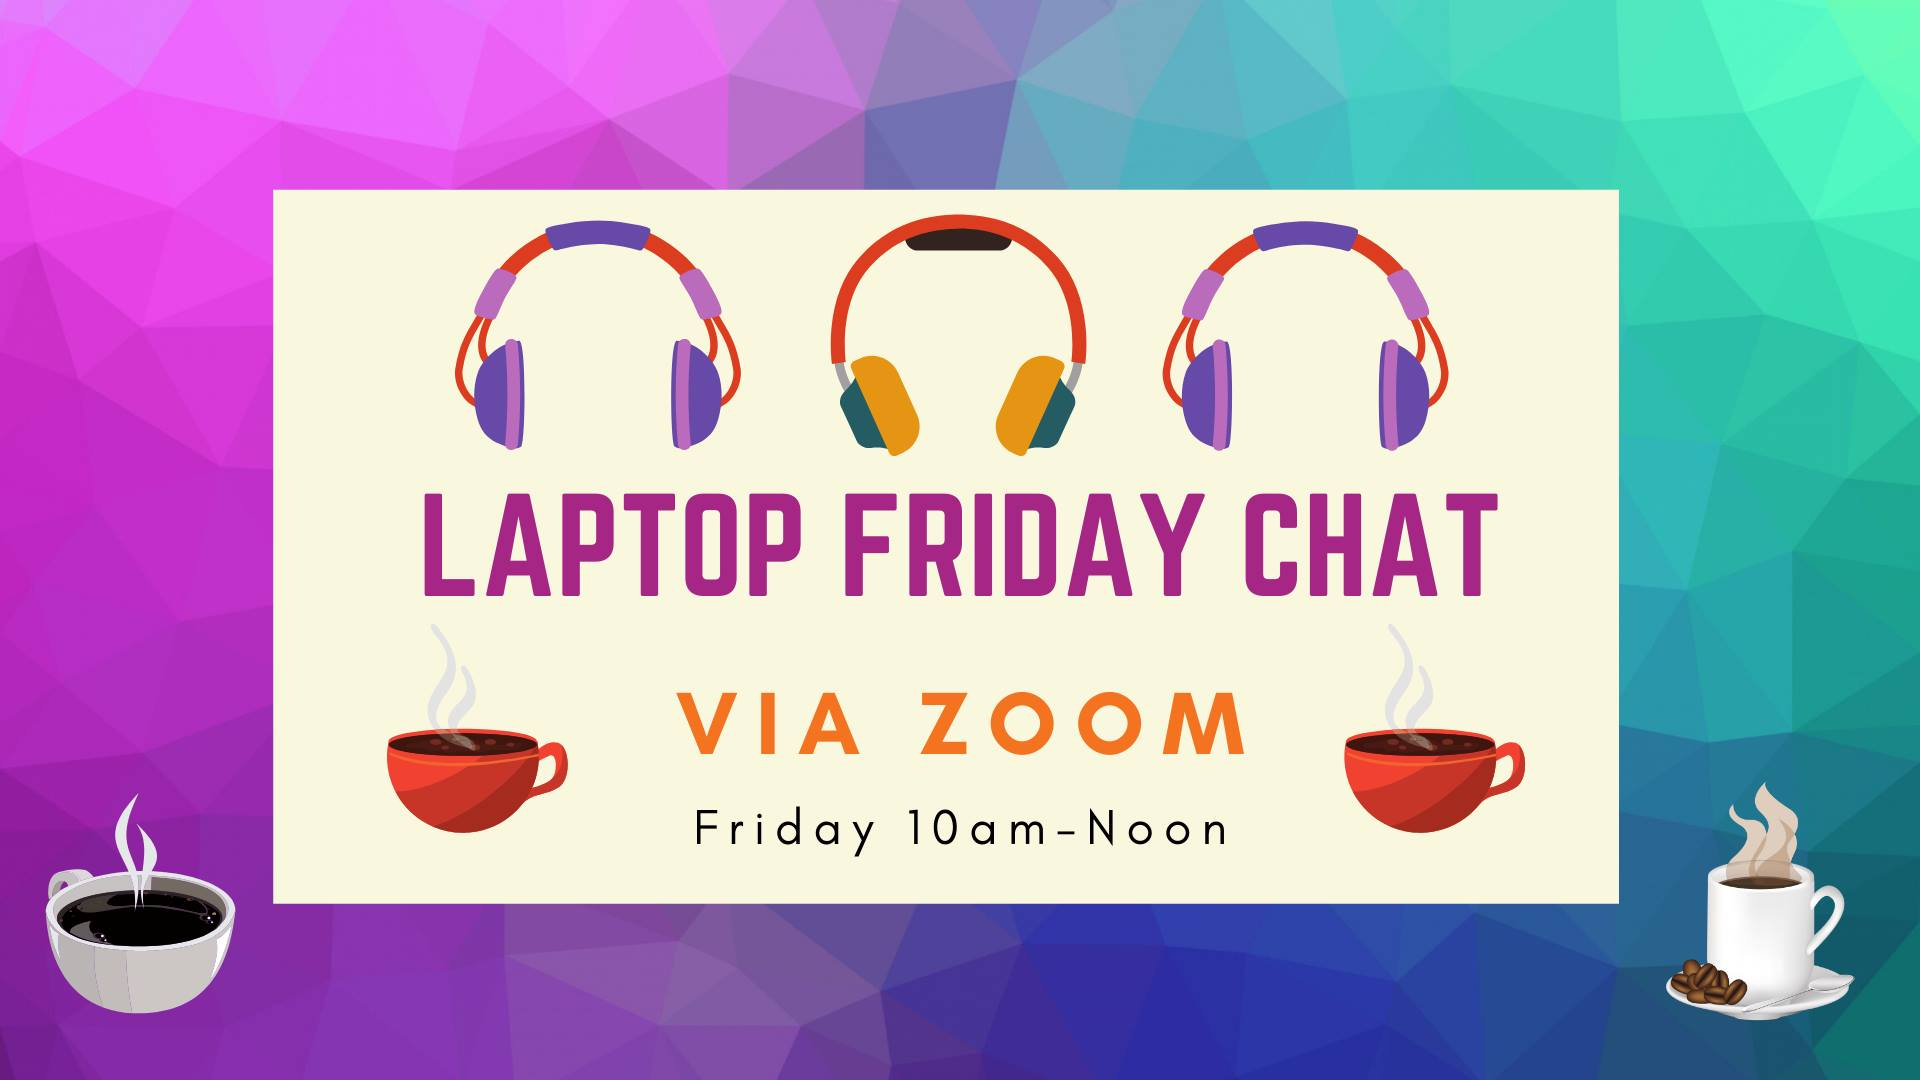 Laptop Friday Chat via zoom Friday 10 till noon